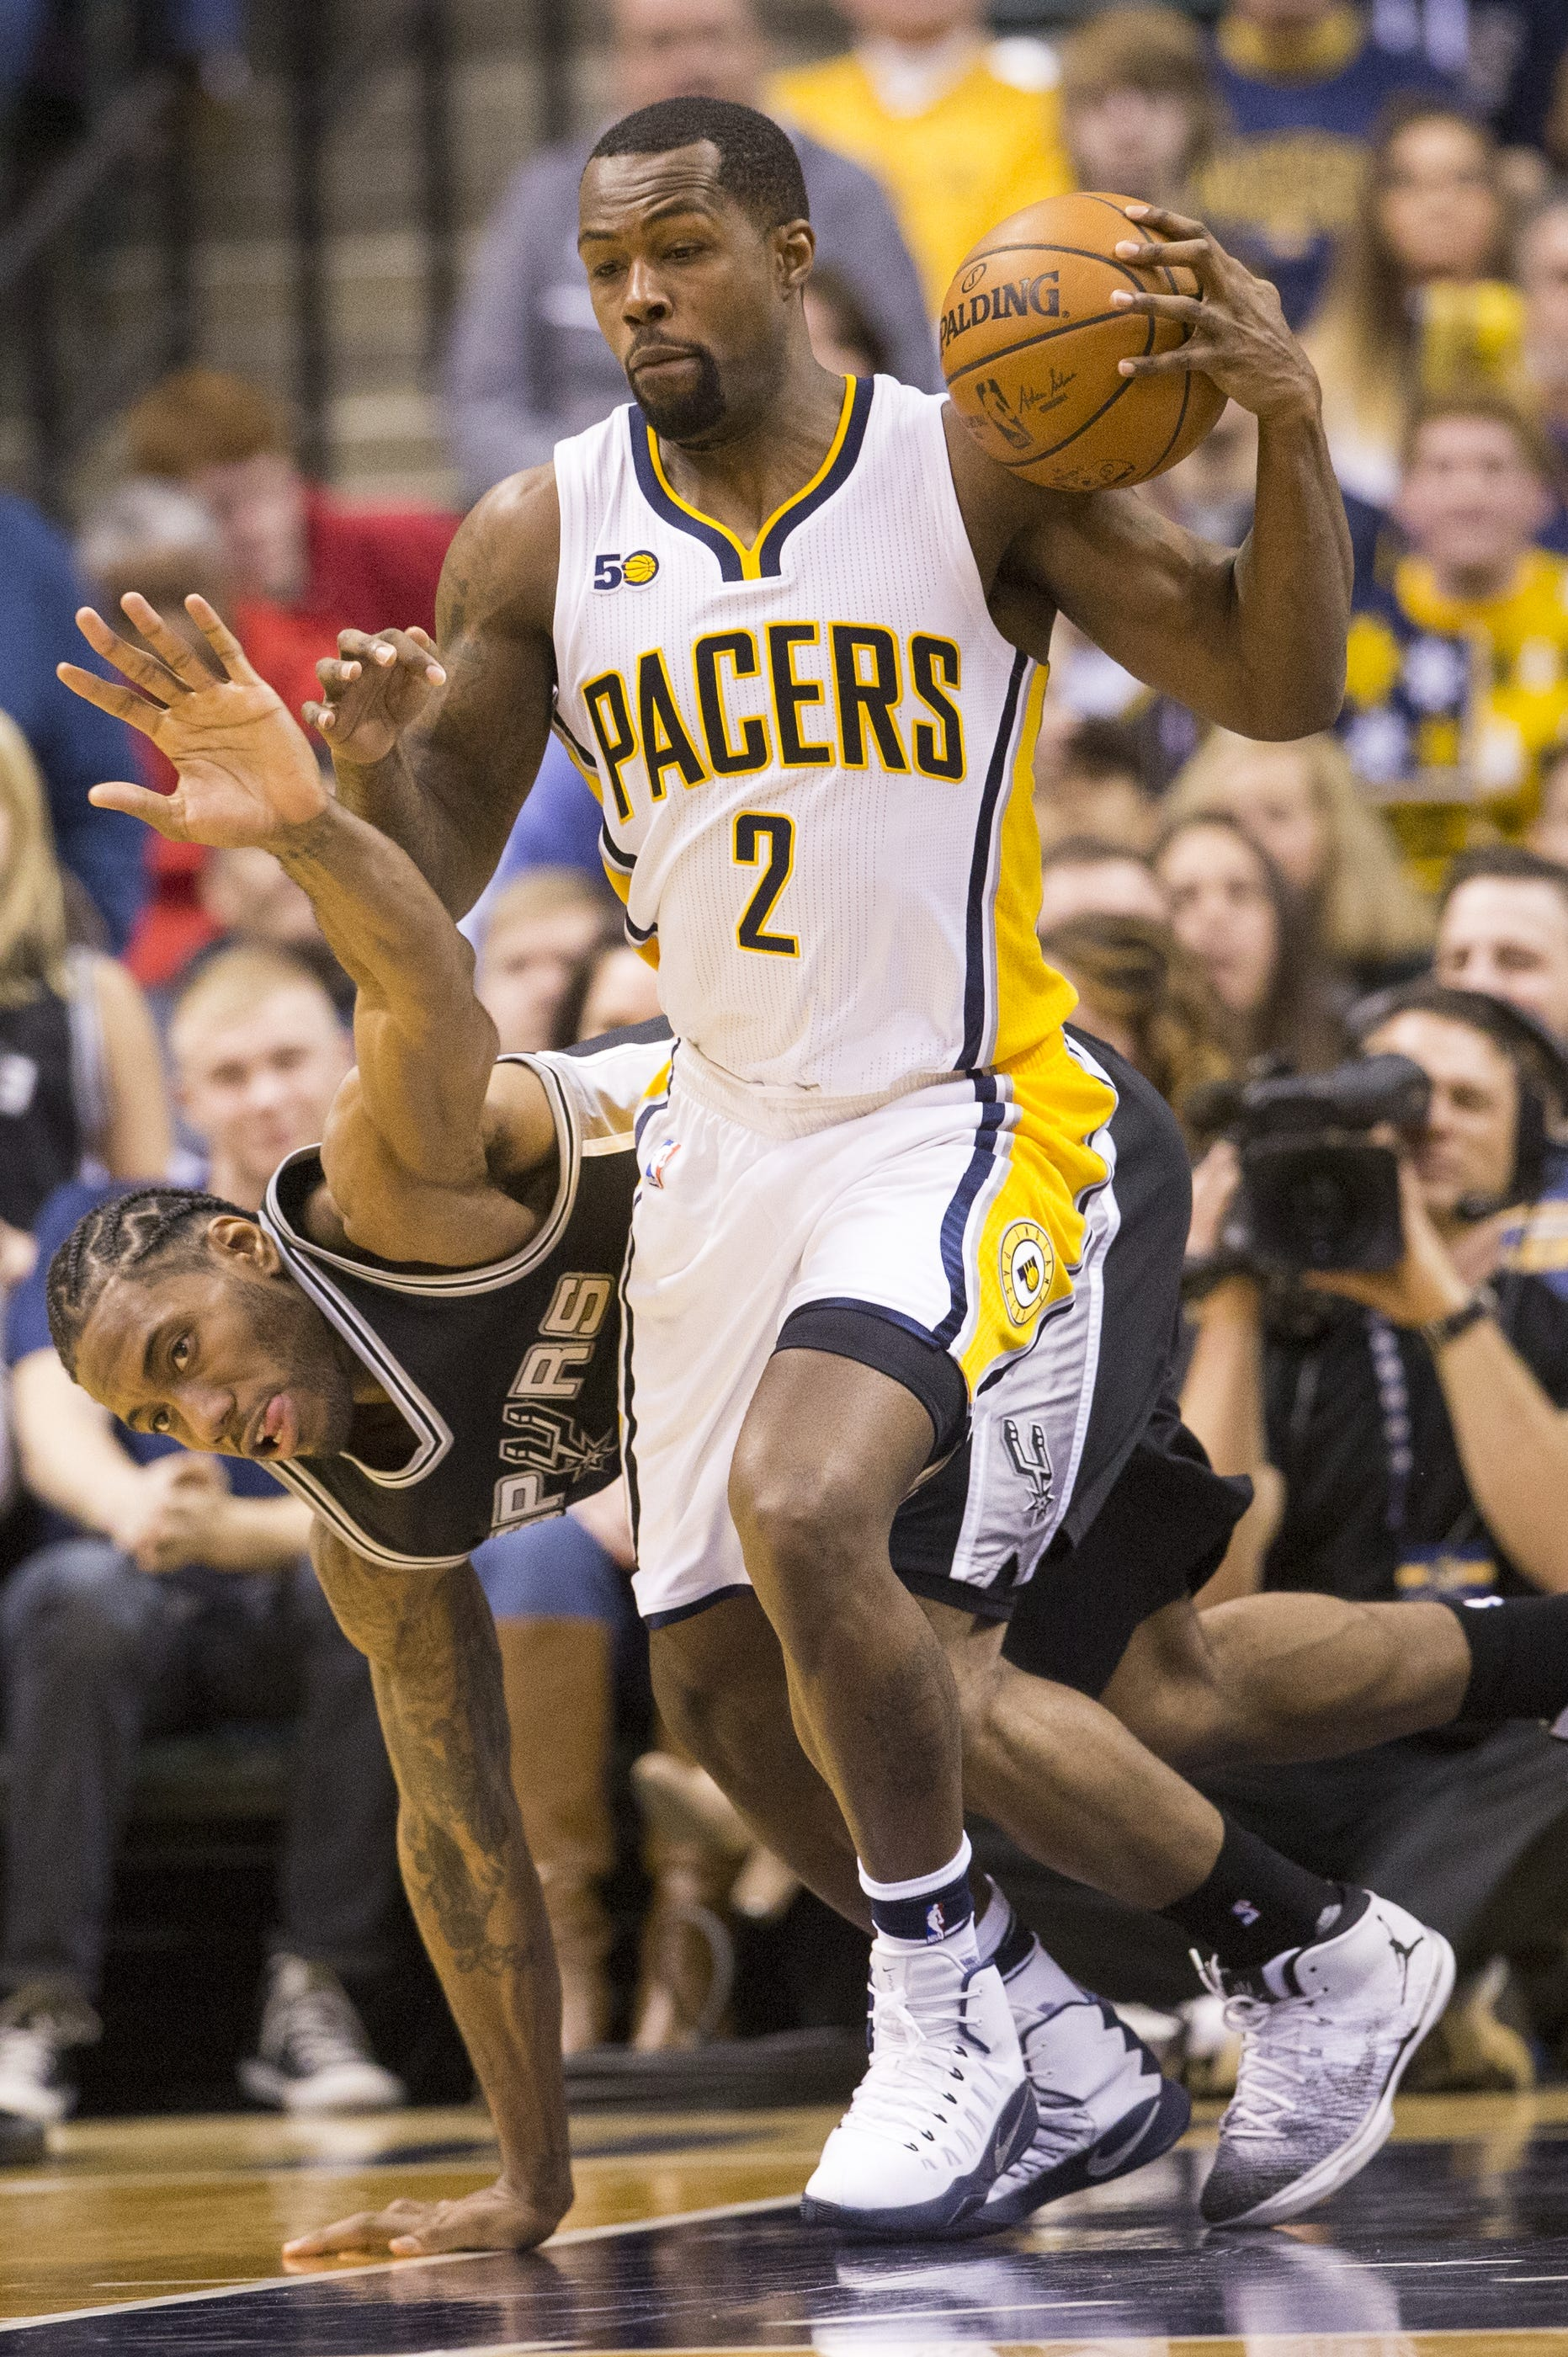 Report: Pacers to release Rodney Stuckey